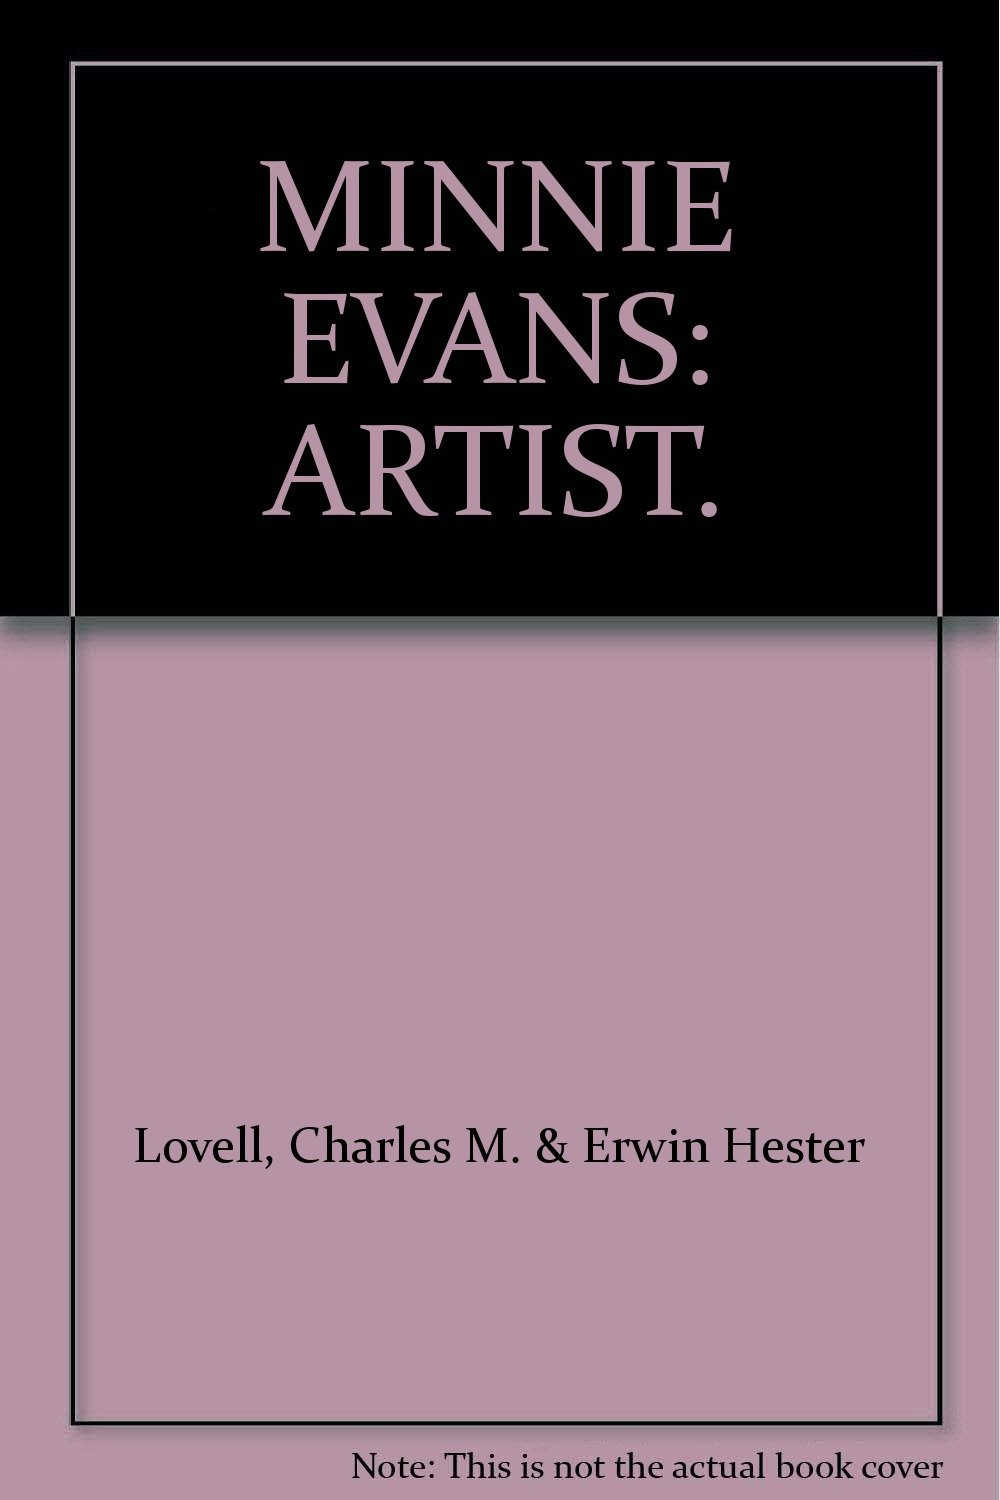 Evans and lovell